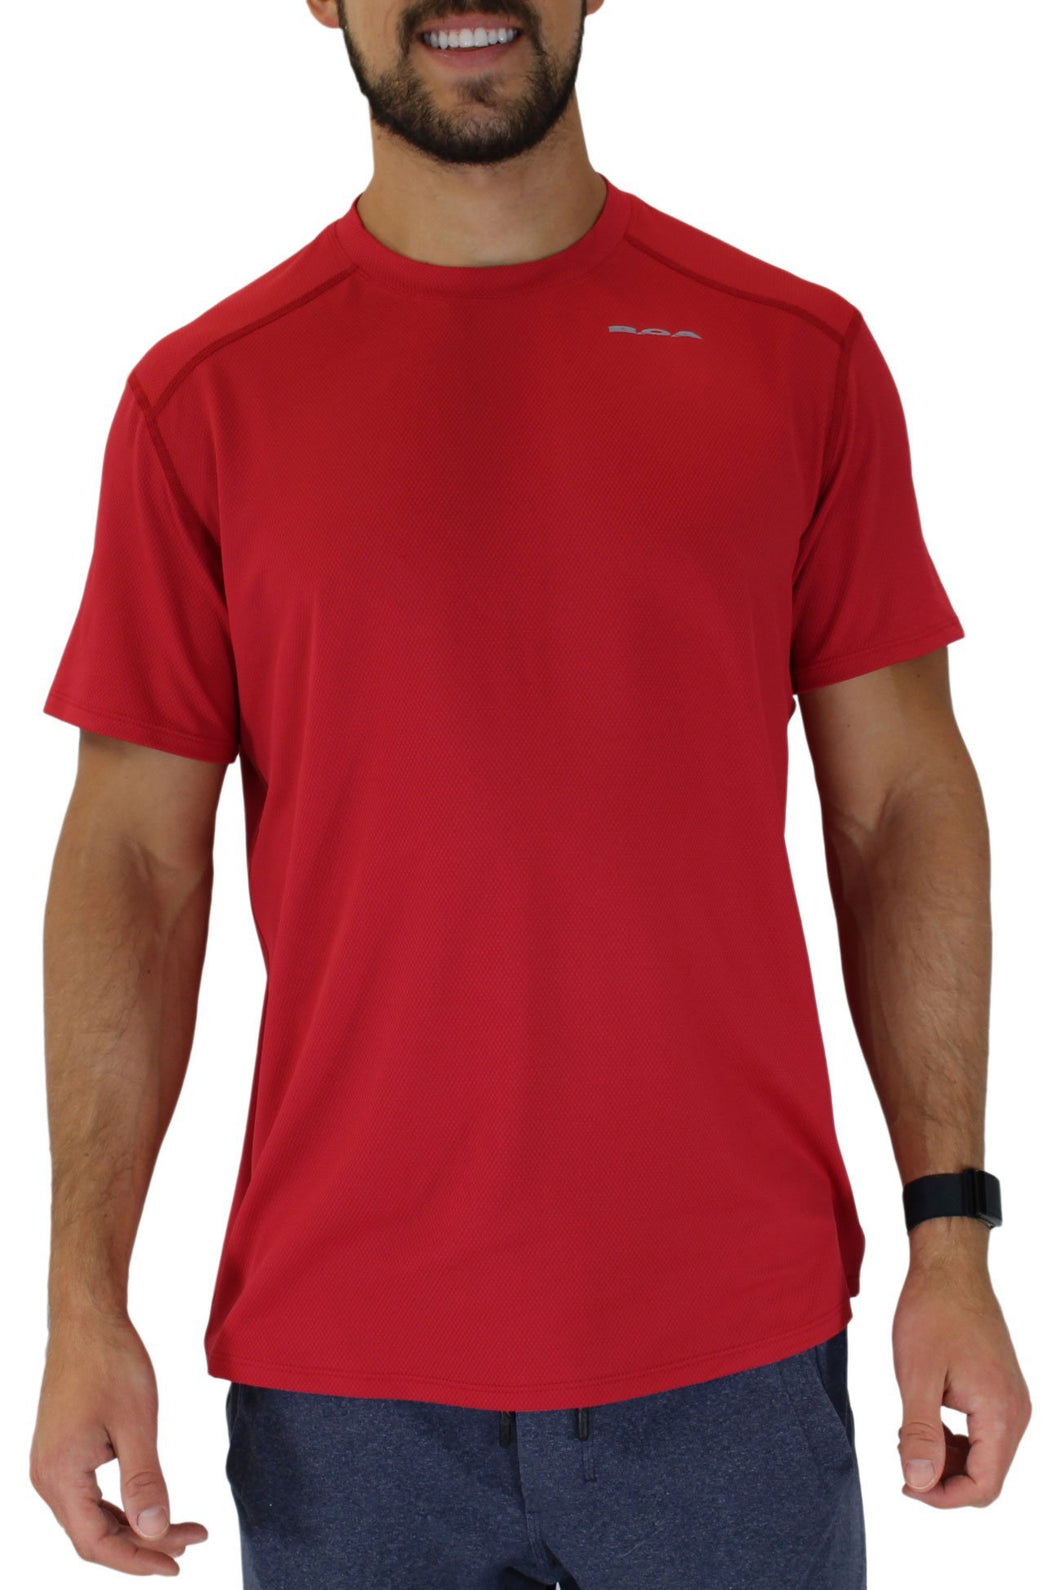 BOA USA MEN'S VERSATEX CANYON SHORT SLEEVE RUNNING SHIRT